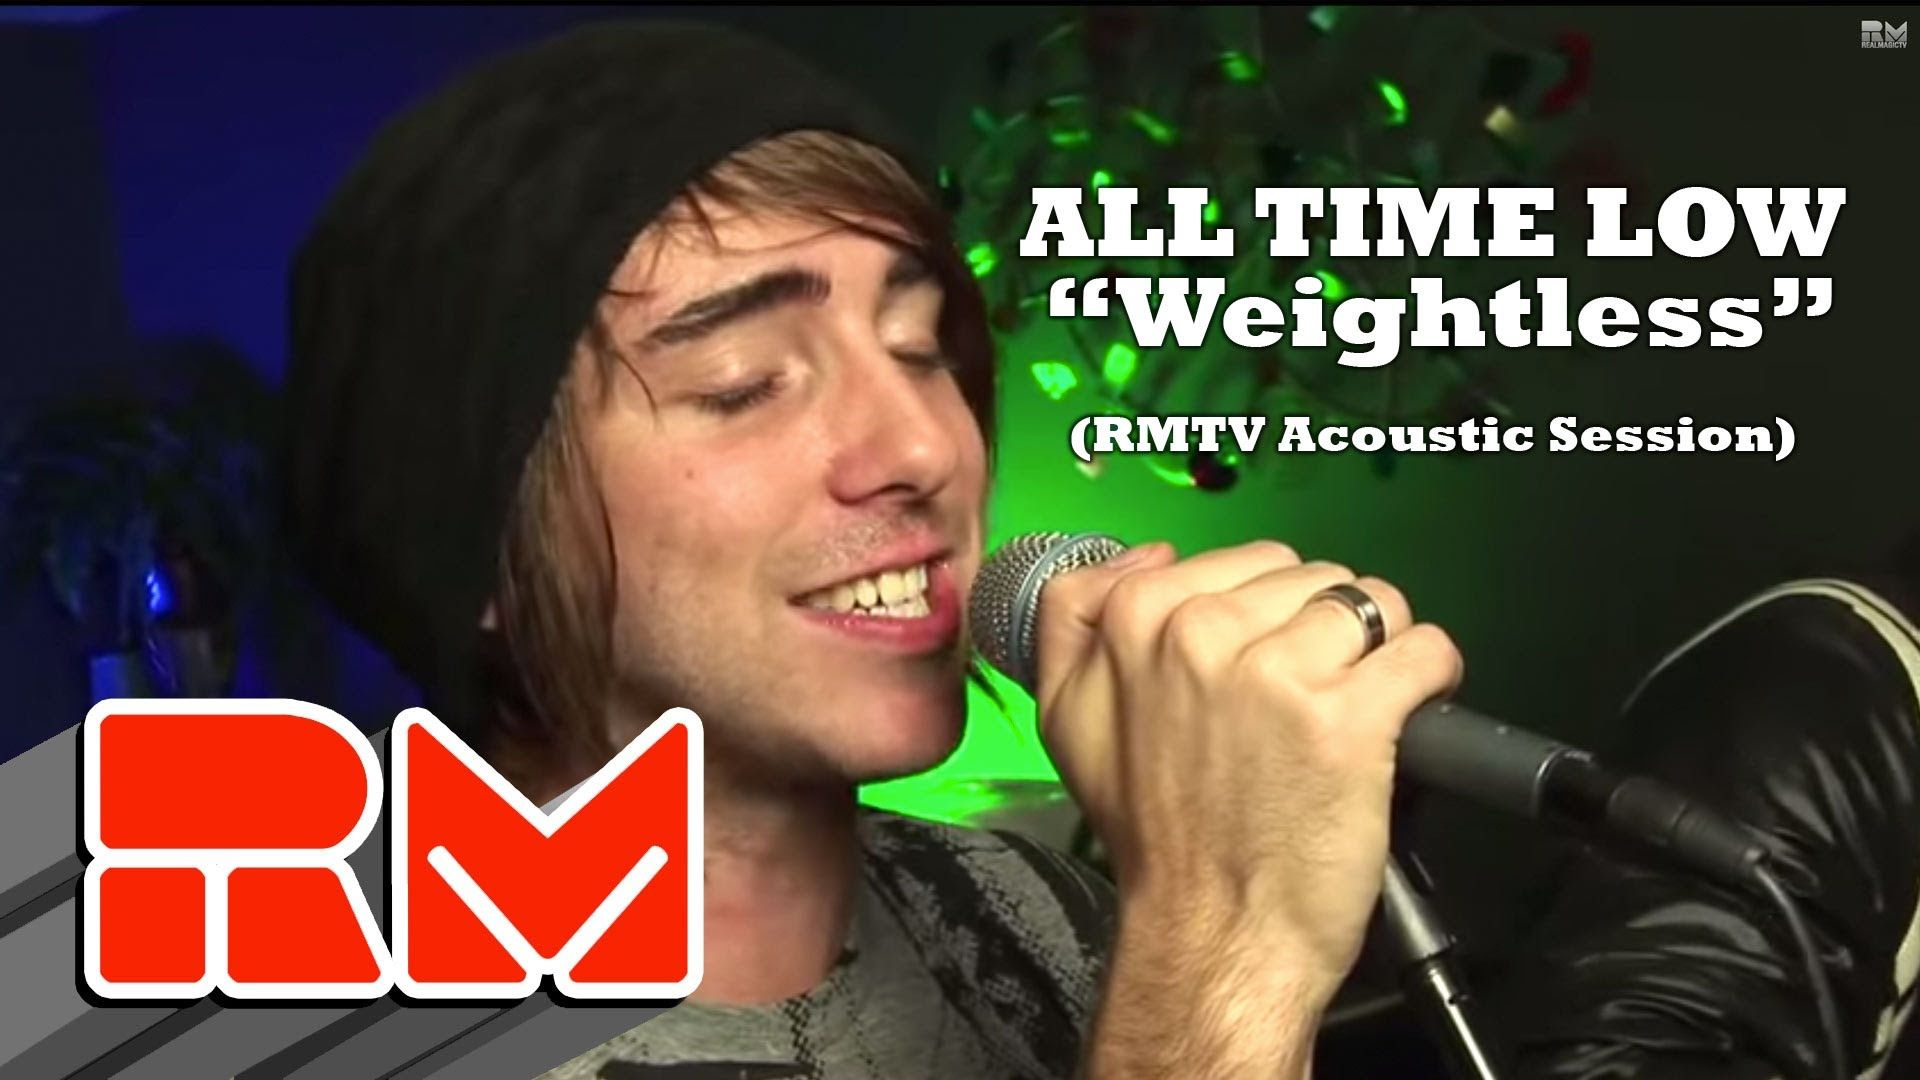 All time low jasey rae acoustic chords music chords all time low jasey rae acoustic chords music chords pinterest acoustic guitars and guitar chords hexwebz Images